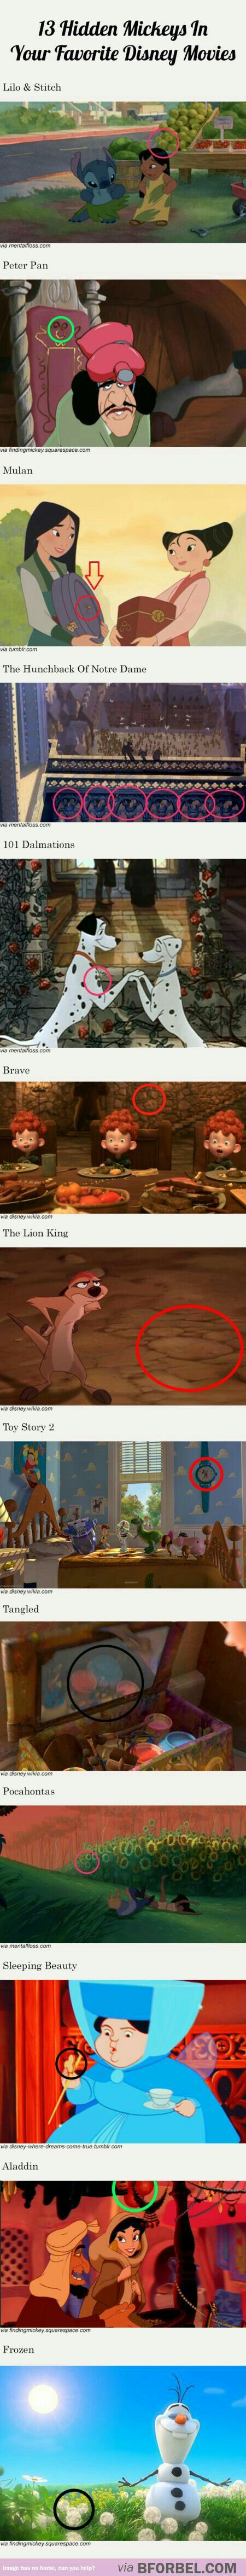 I'm pretty sure that some of these are coincidences. Unless if Disney is very good at hiding them.